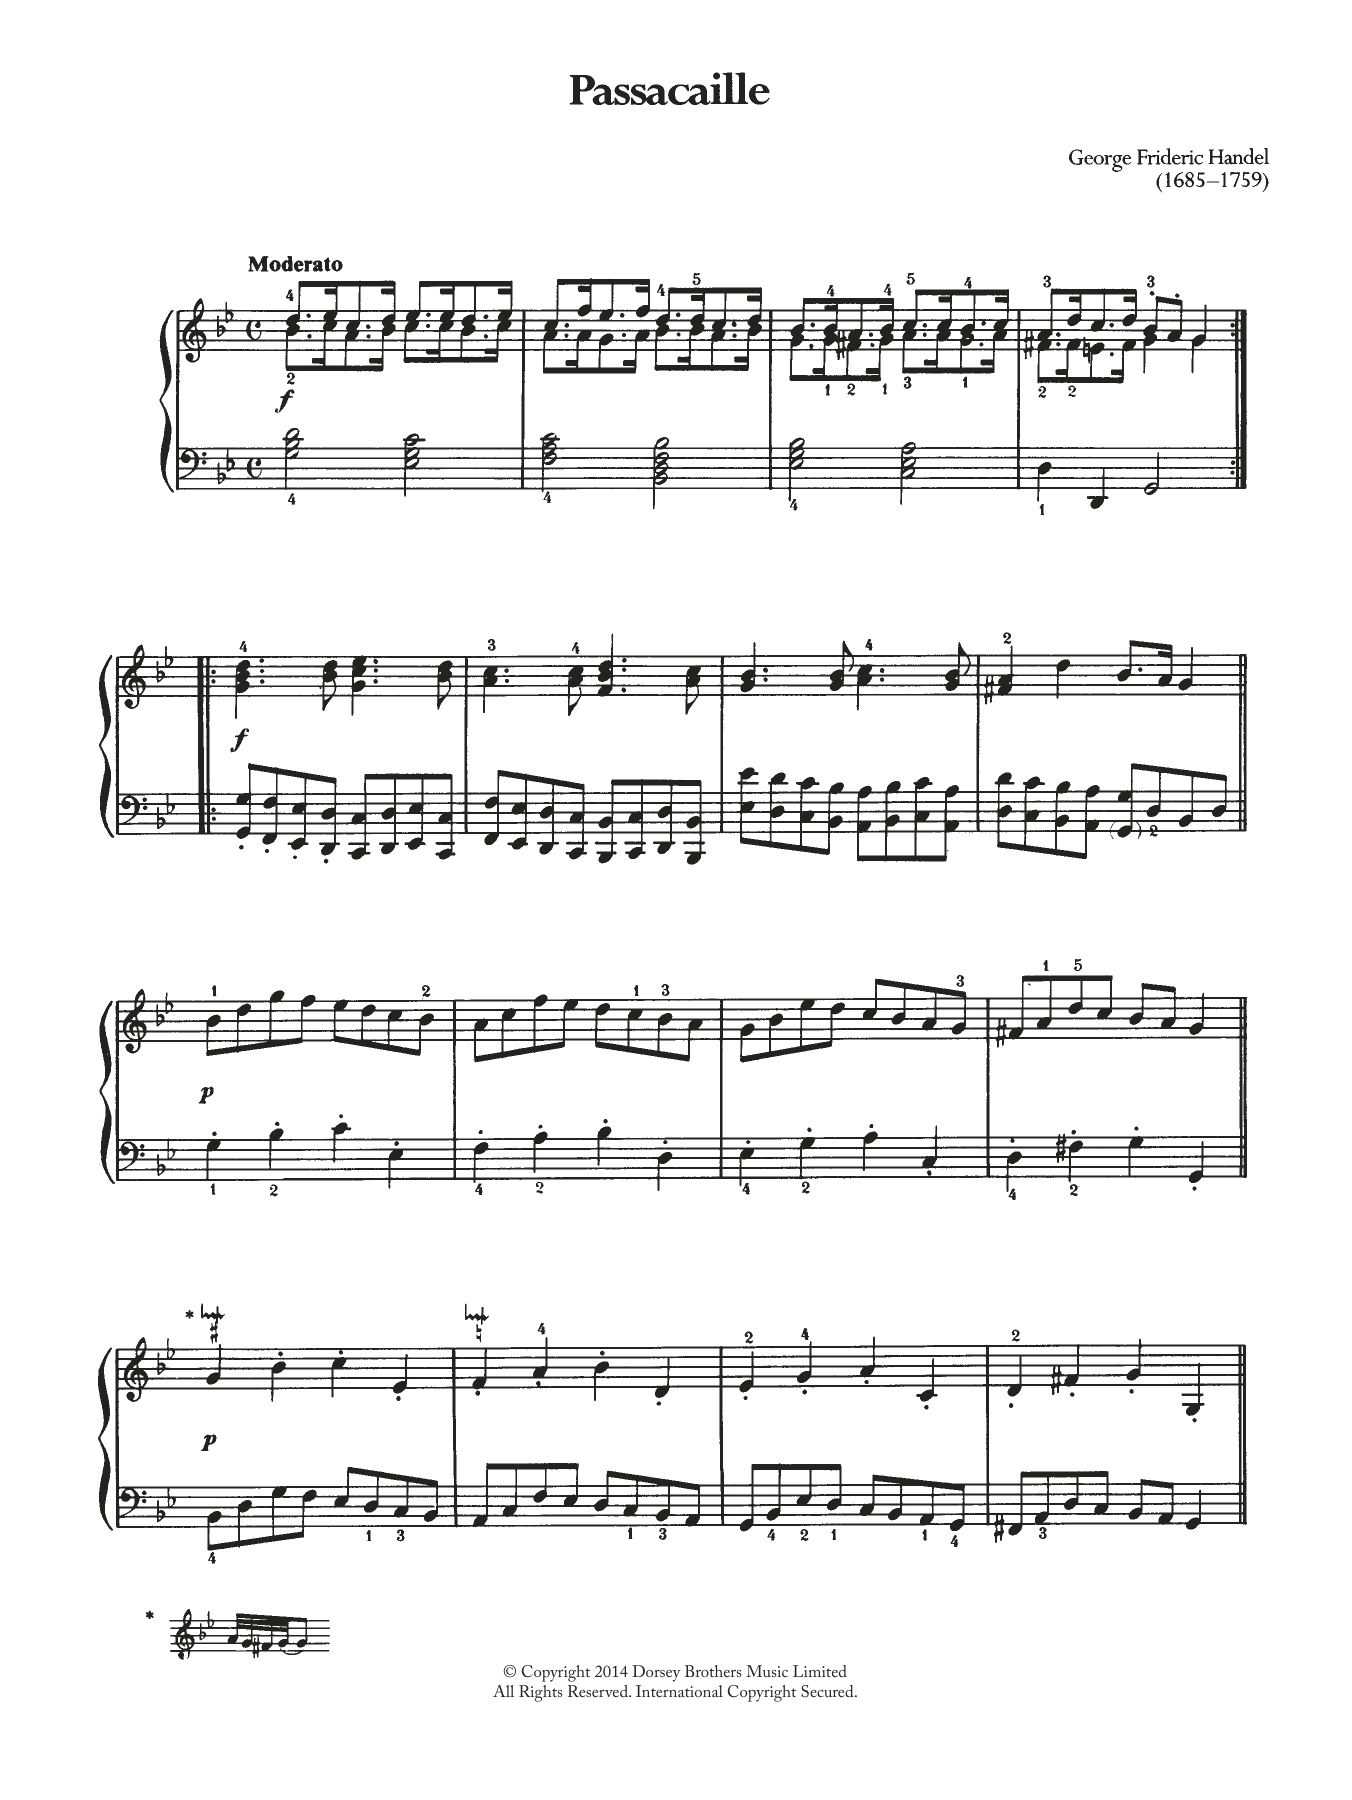 Passacaille Sheet Music